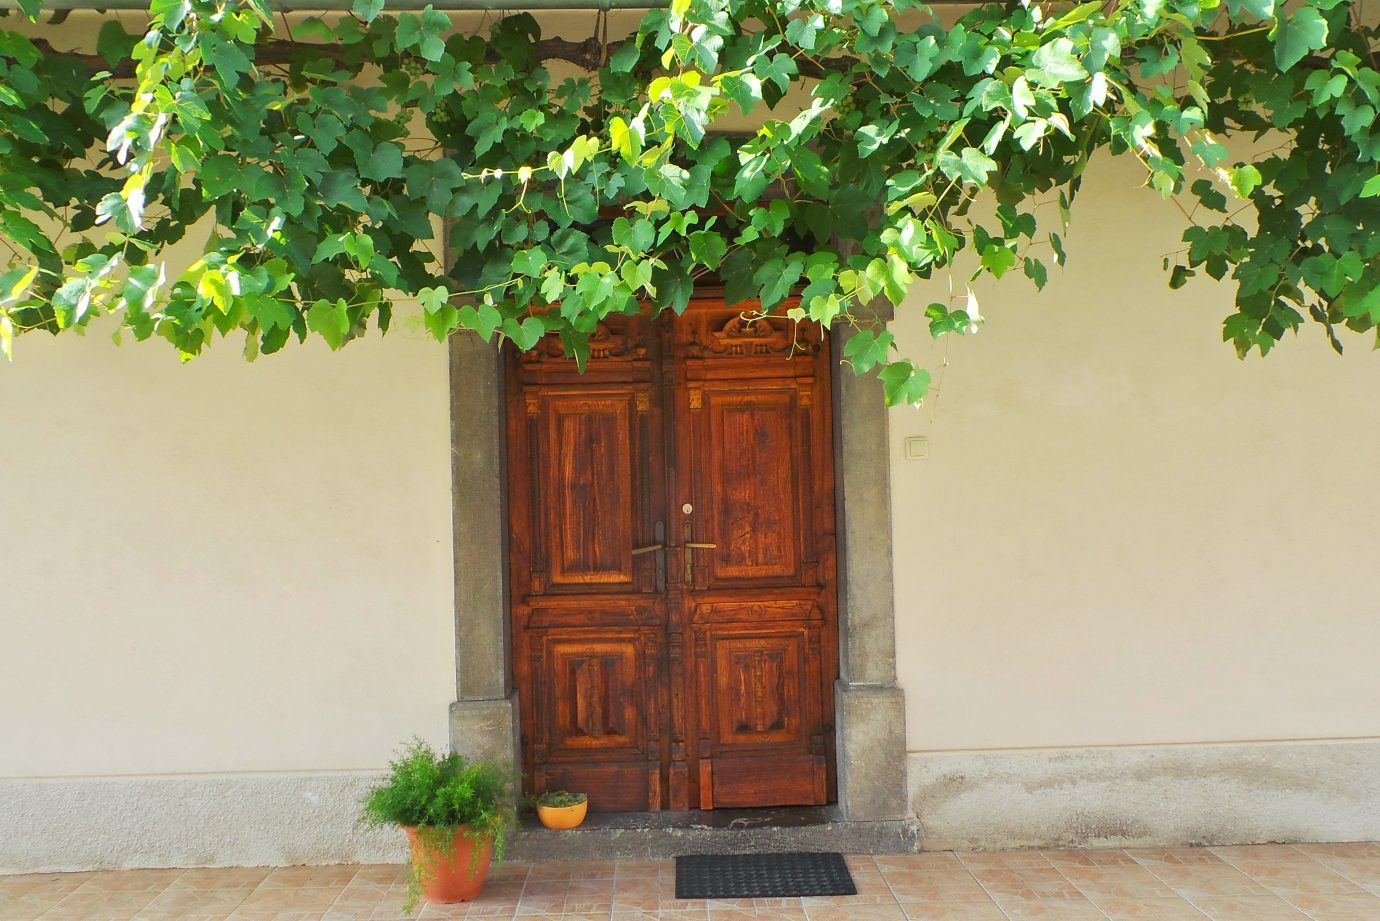 Green foliage covering an old wooden door